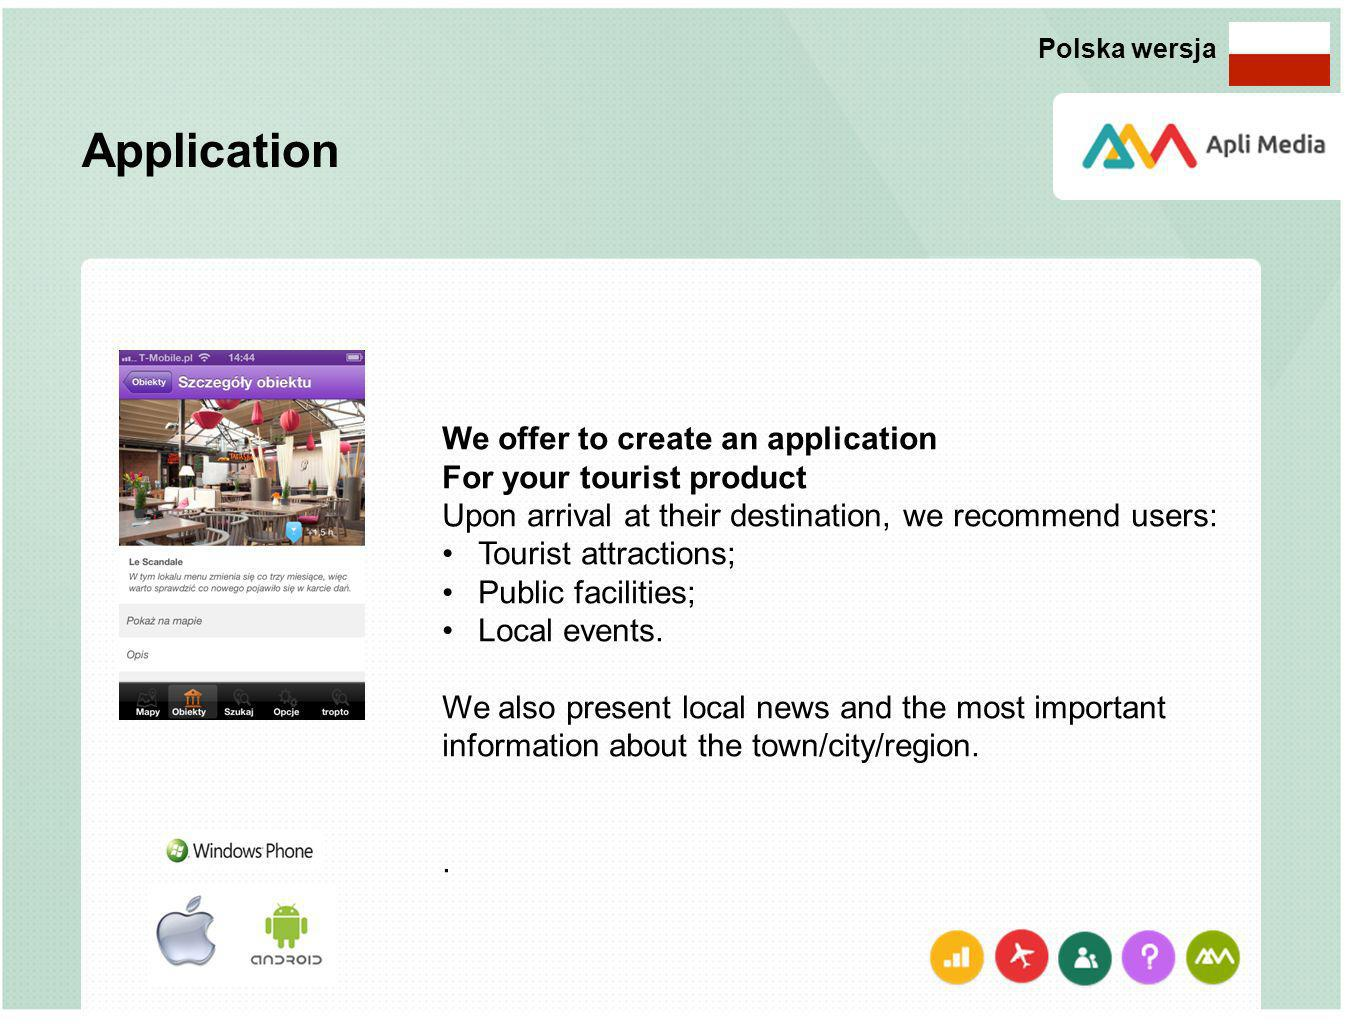 Application We offer to create an application For your tourist product Upon arrival at their destination, we recommend users: Tourist attractions; Public facilities; Local events.